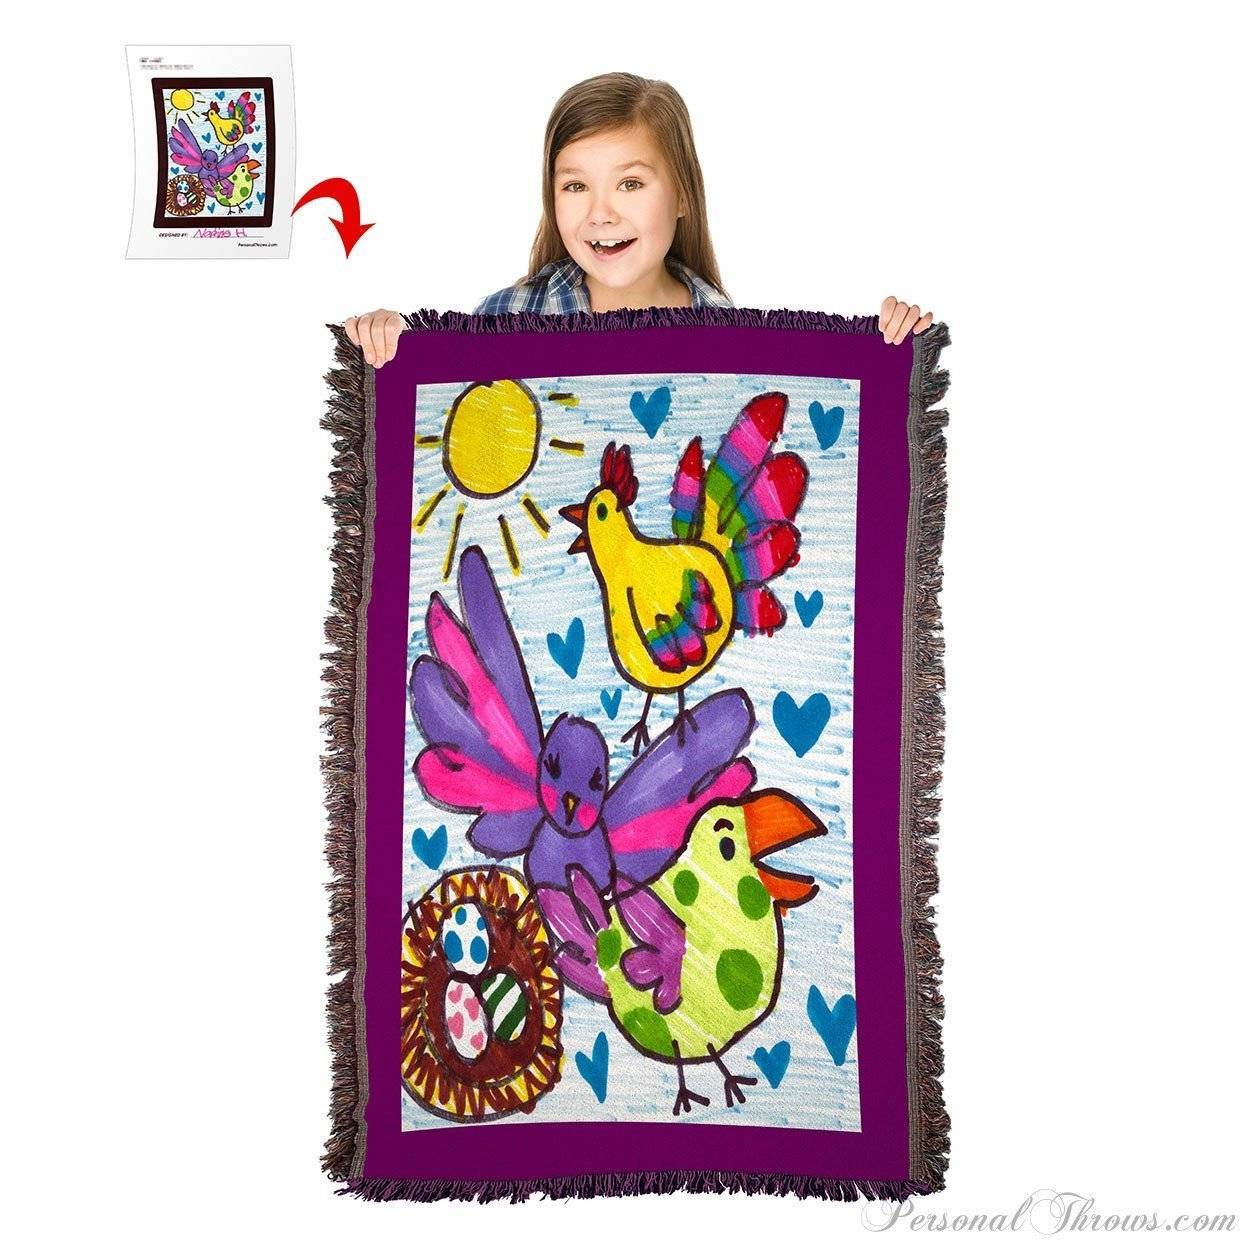 "Kids' Creations - Turn Your Child's Drawing Into A 54"" X 38"" HD Woven Throw Blanket"